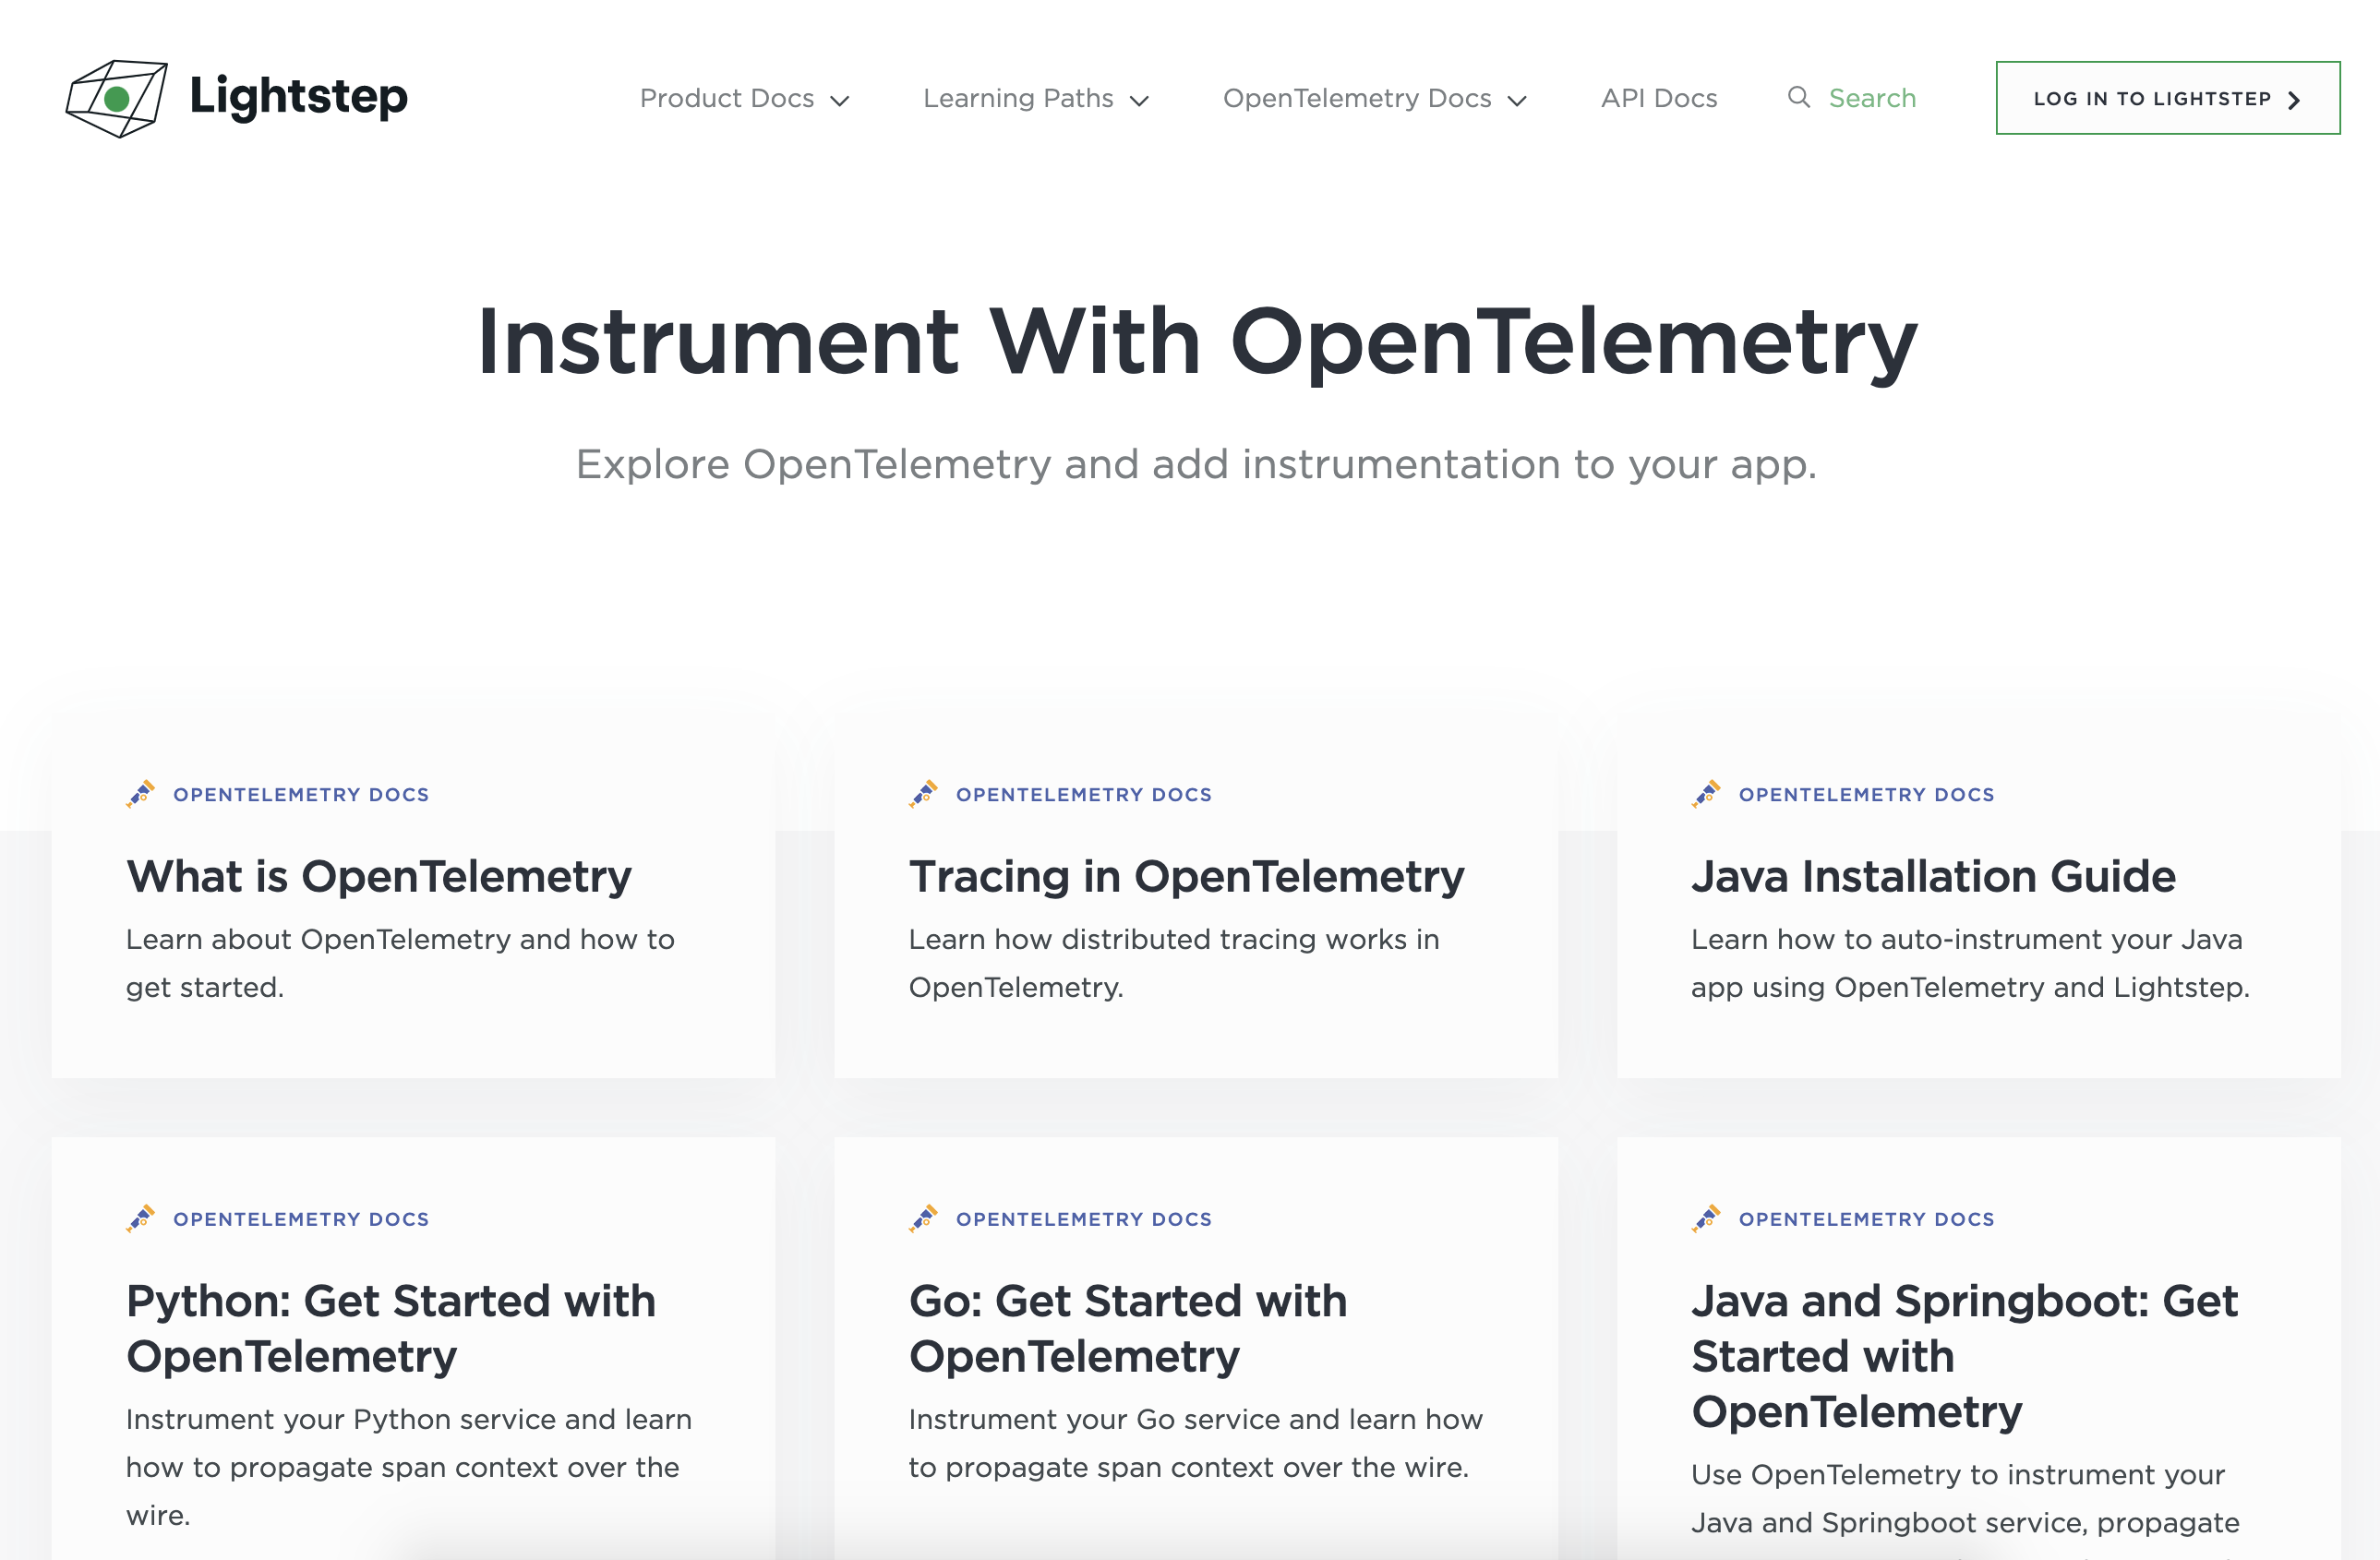 Lightstep Learning Portal - OpenTelemetry Content